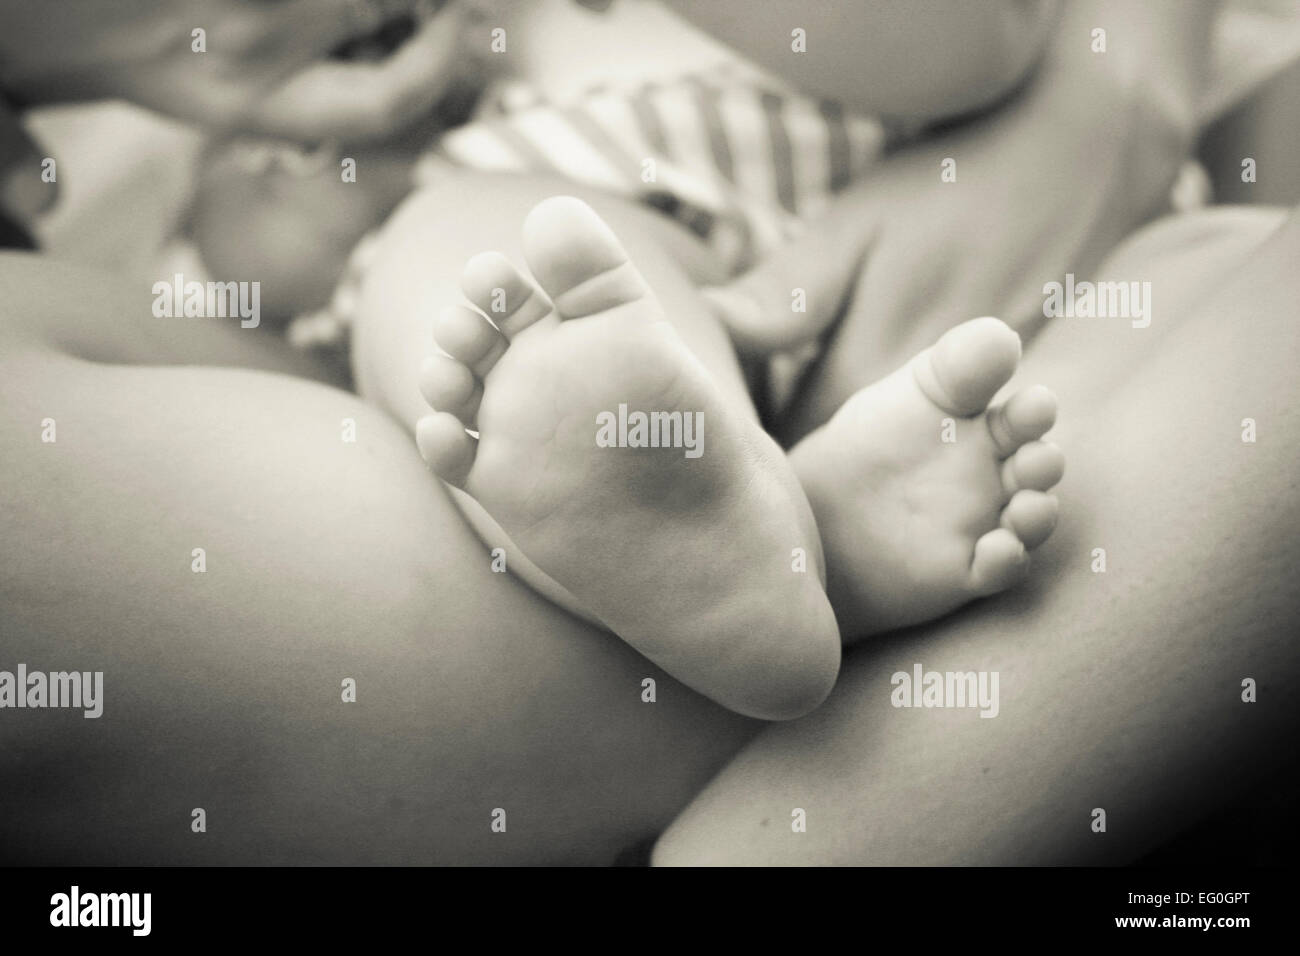 Baby and parent, close-up of baby's feet - Stock Image